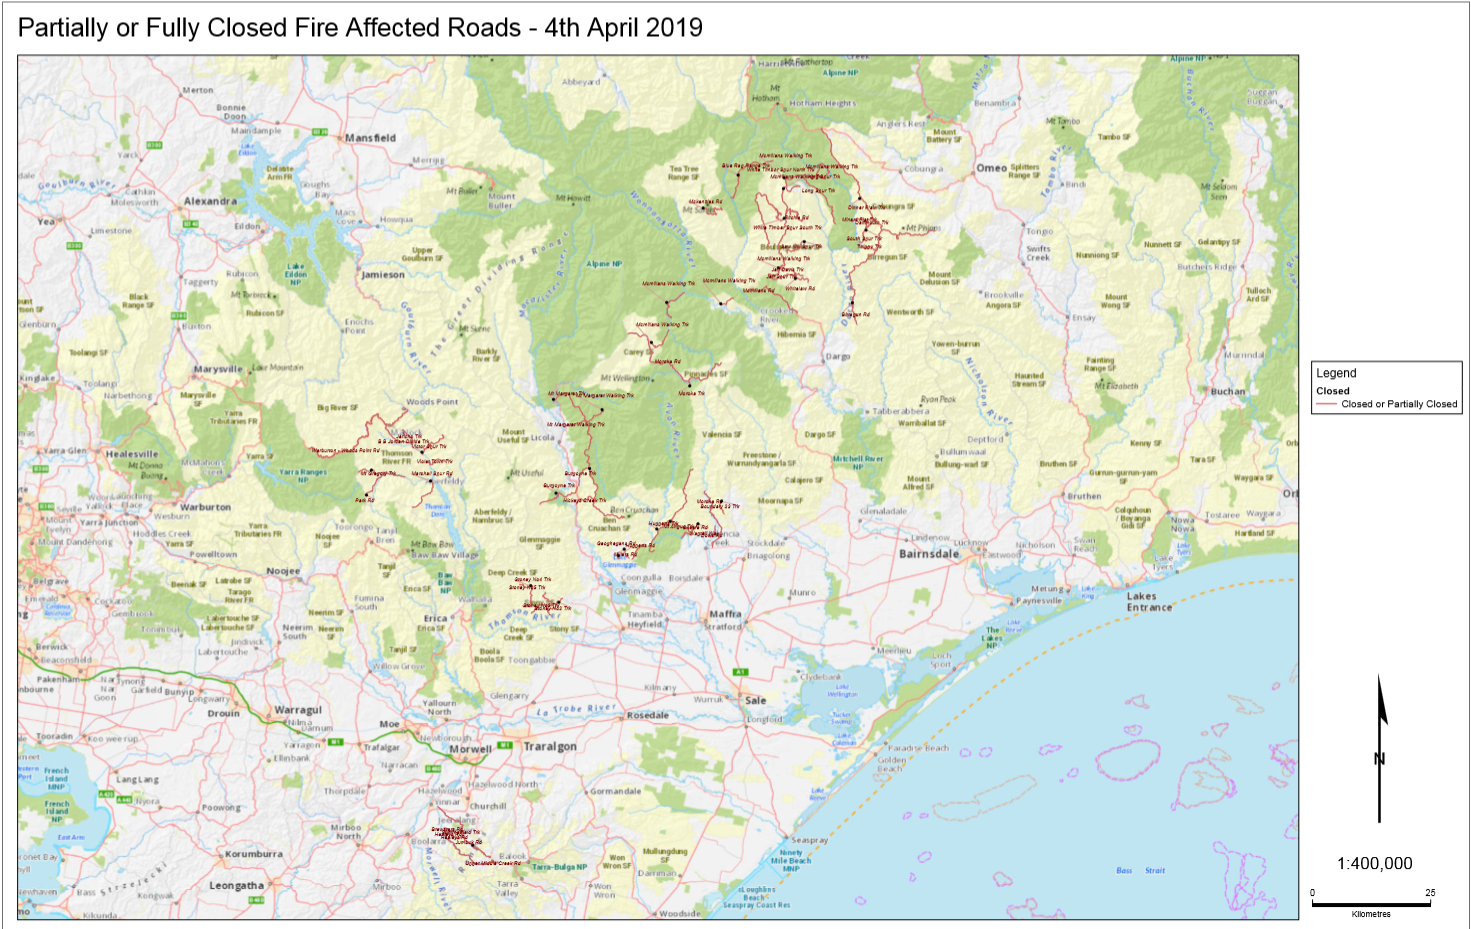 Four Wheel Drive Victoria - Map of Road Closures in Gippsland